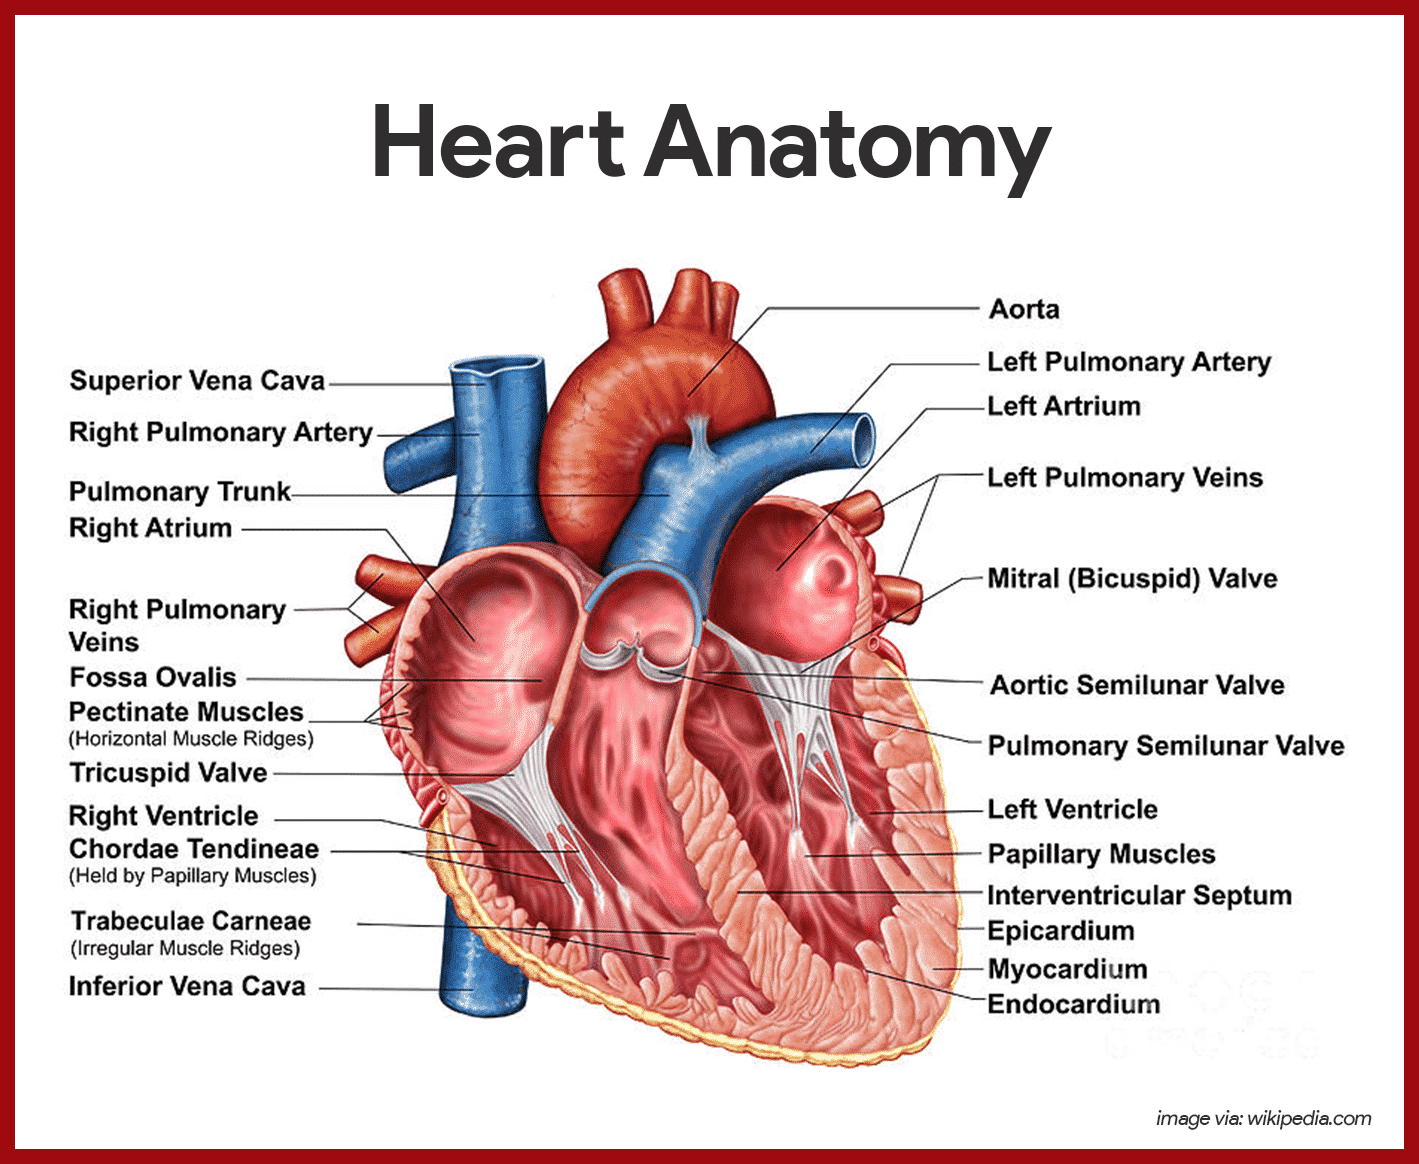 Heart Anatomy - Anatomy and Physiology